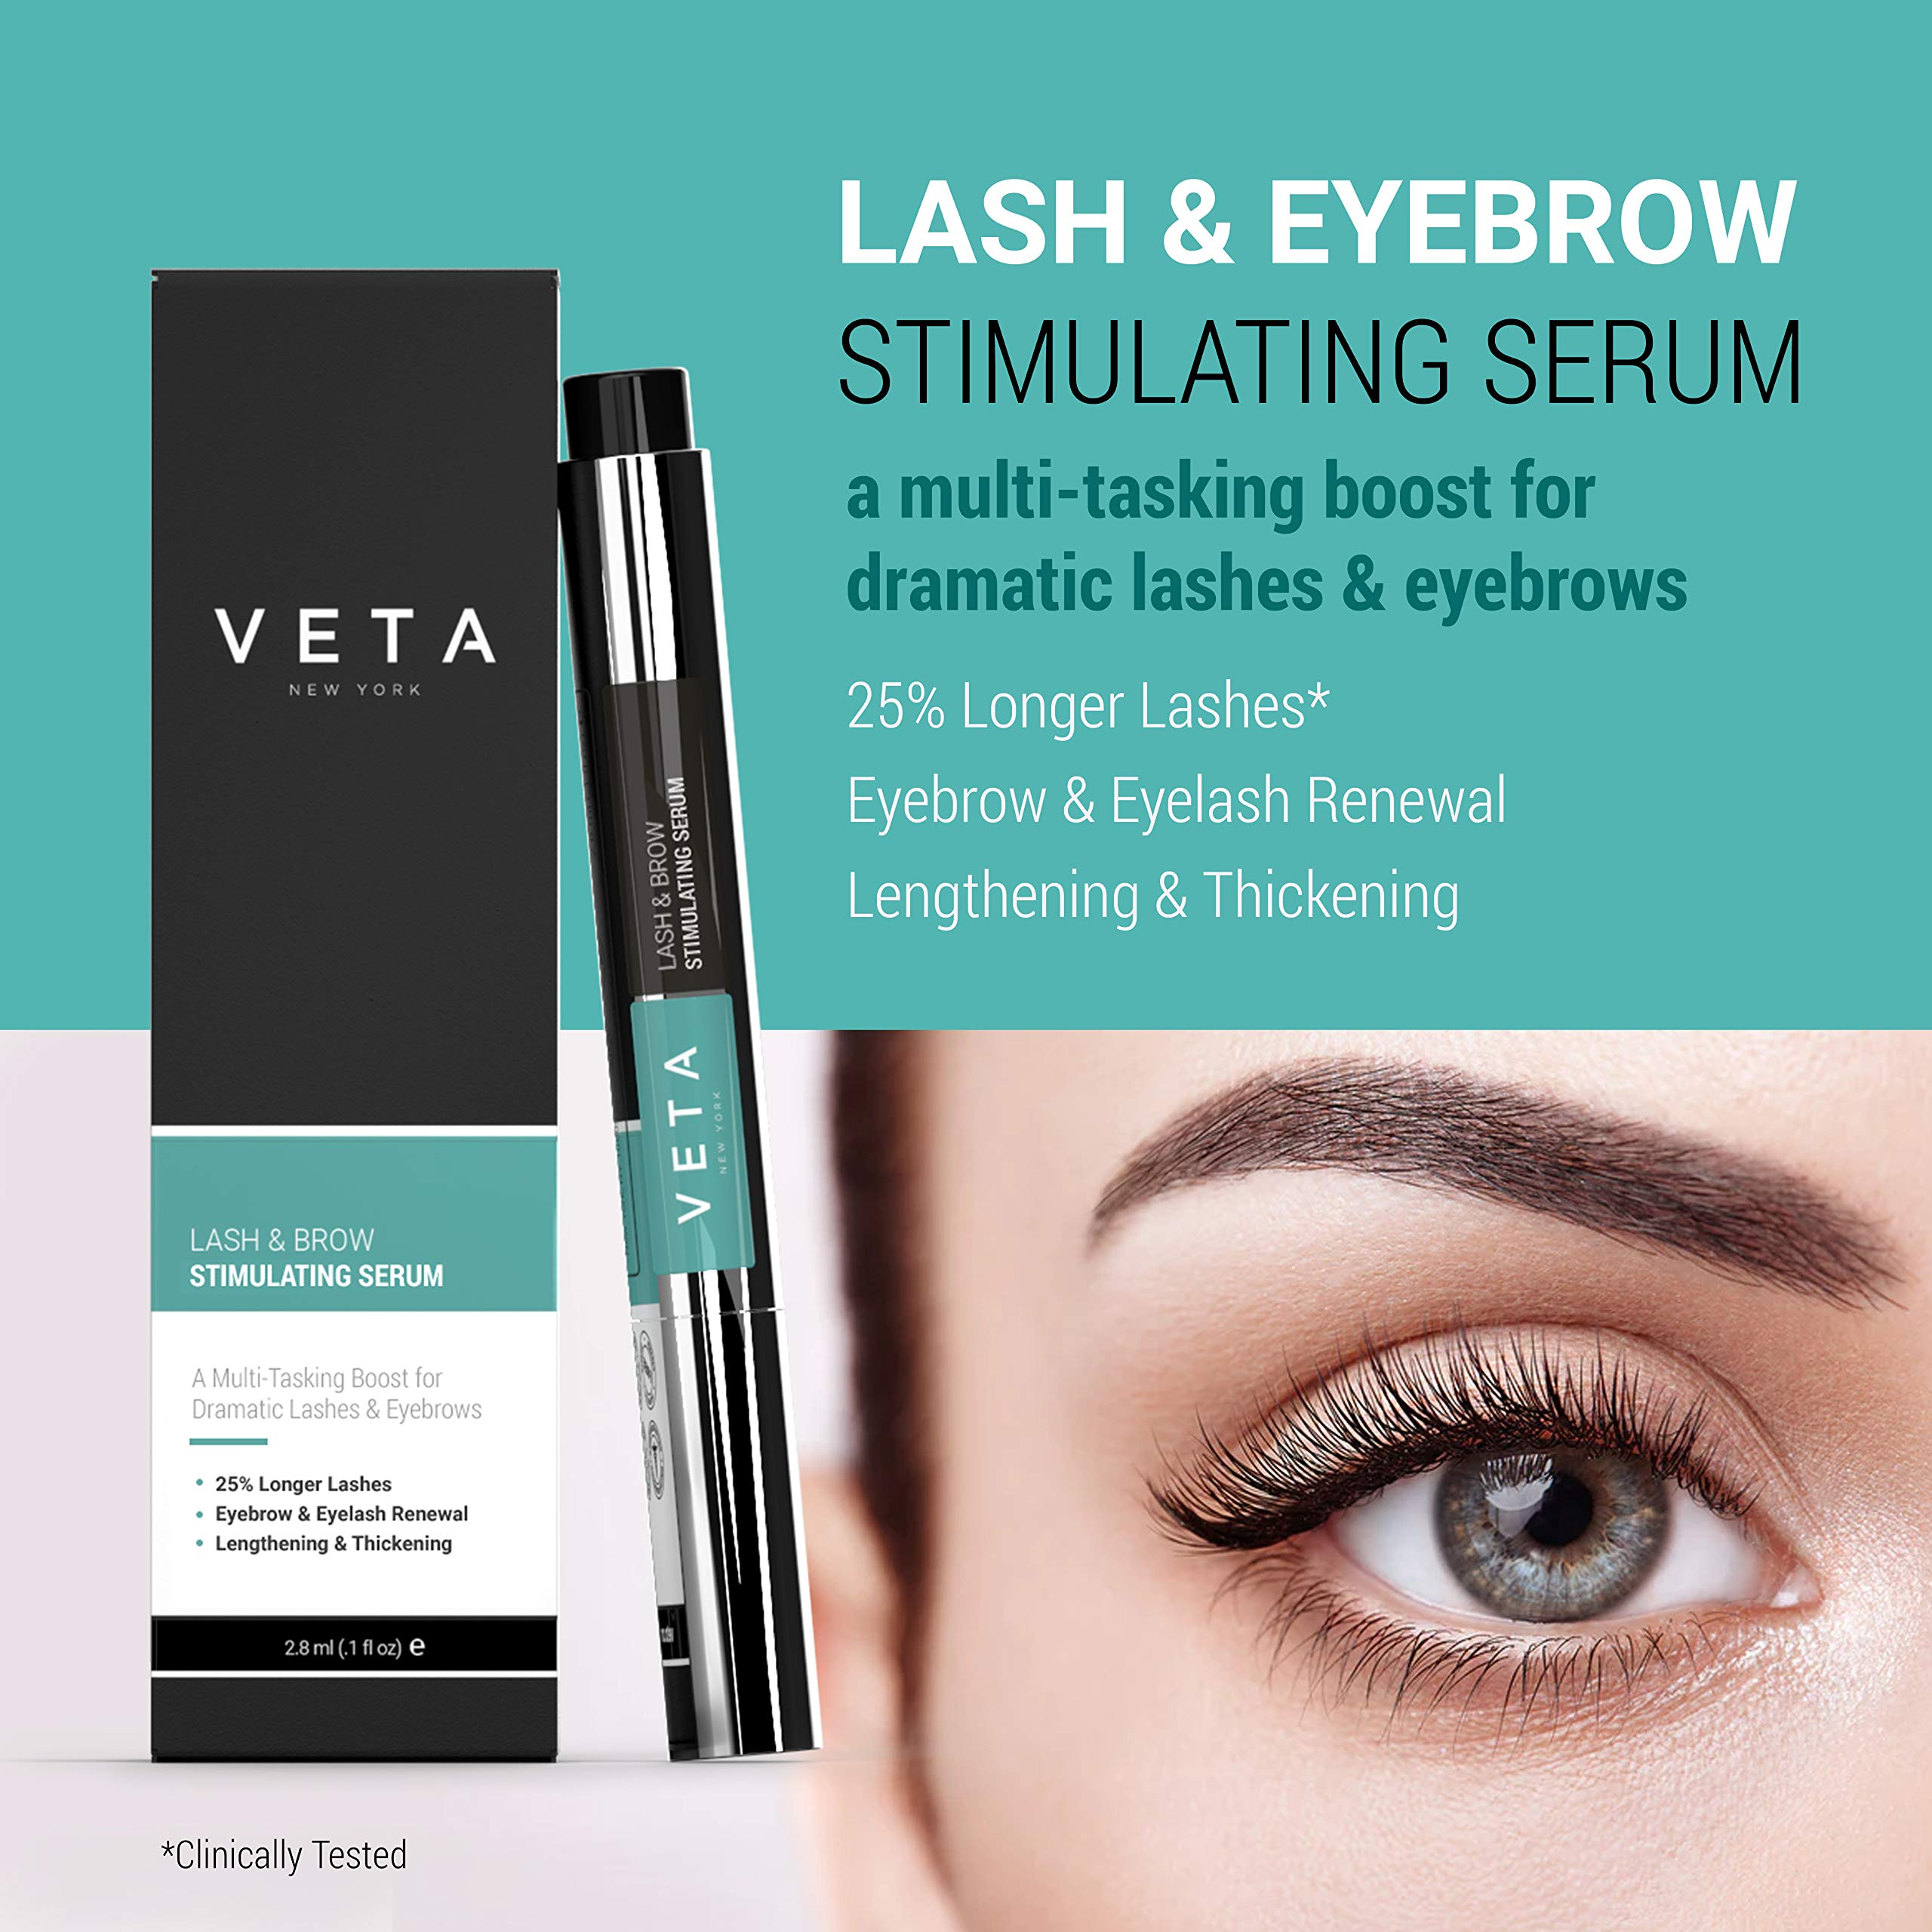 Veta - Lash and Eyebrow Serum - 2-in-1 Lash & Brow Pen - Produces Longer, Healthier, Denser Lashes and Thicker Brows - Eyelash Serum - Boosts Skin Collagen - Drug-Free Formula - 1 fl oz. by Veta